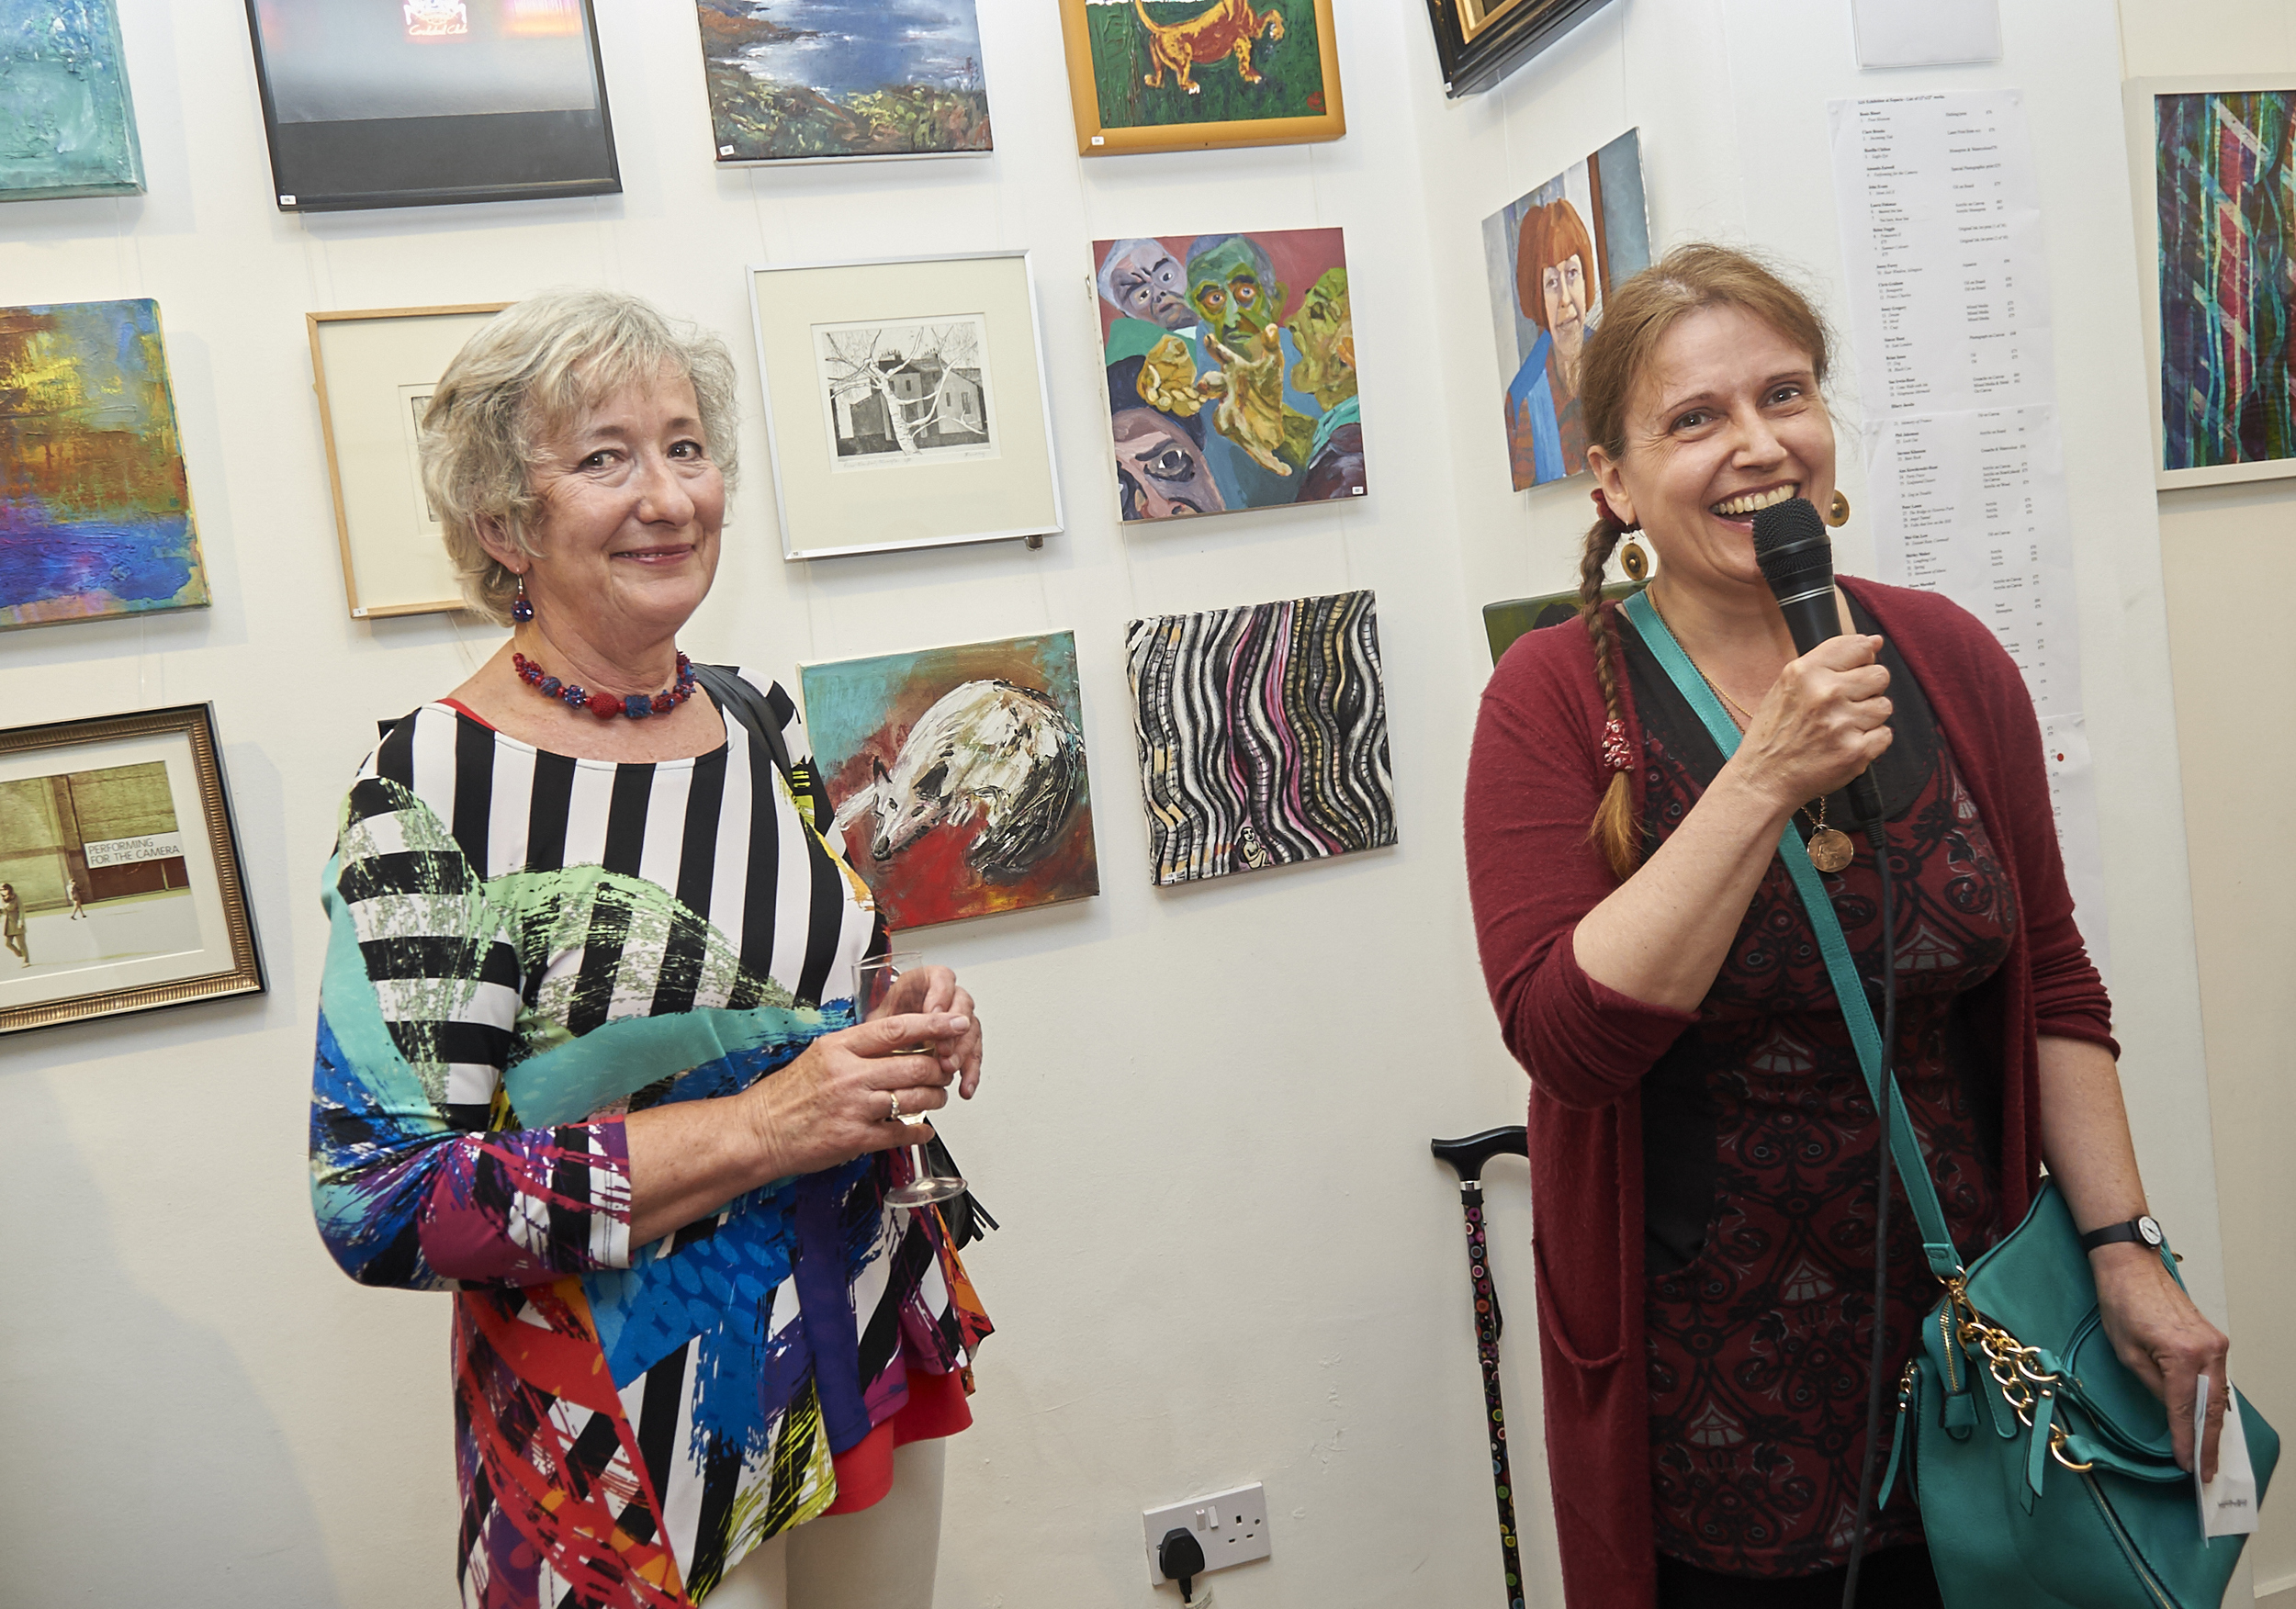 Royal Academician, Anne Desmet (right) and our Chair, Jo Pethybridge open the show.